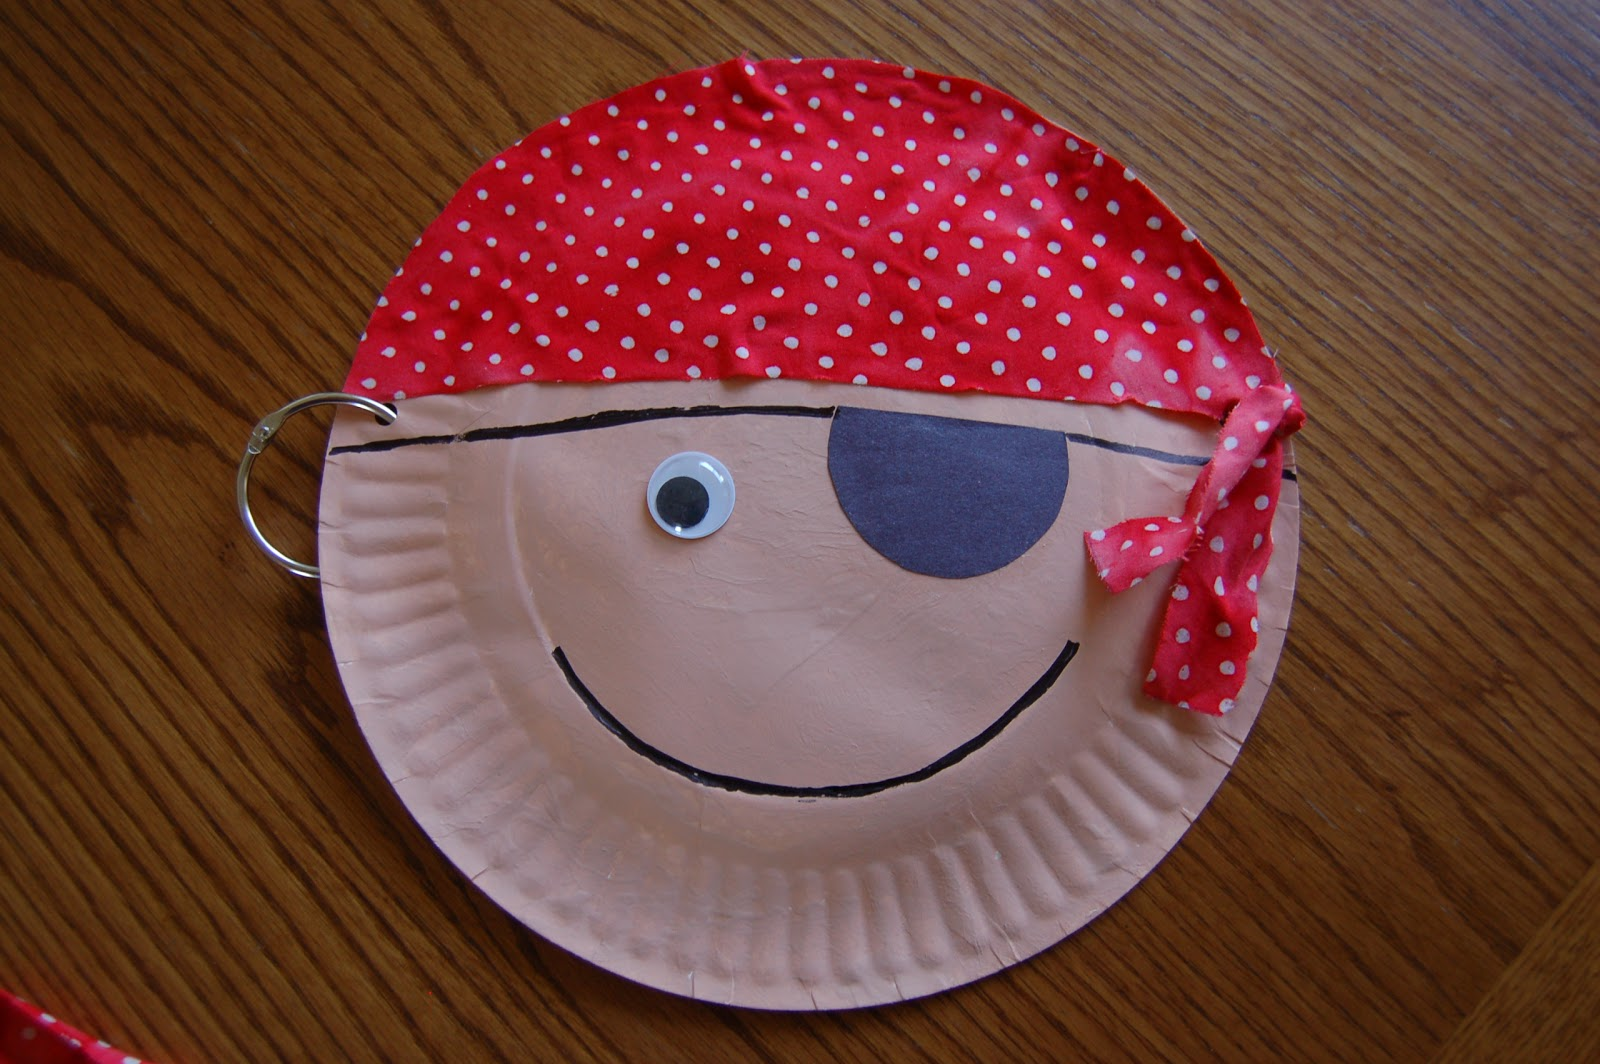 Story Time Tuesday w/ Paper Plate Pirate Craft & Story Time Tuesday w/ Paper Plate Pirate Craft | I Heart Crafty Things